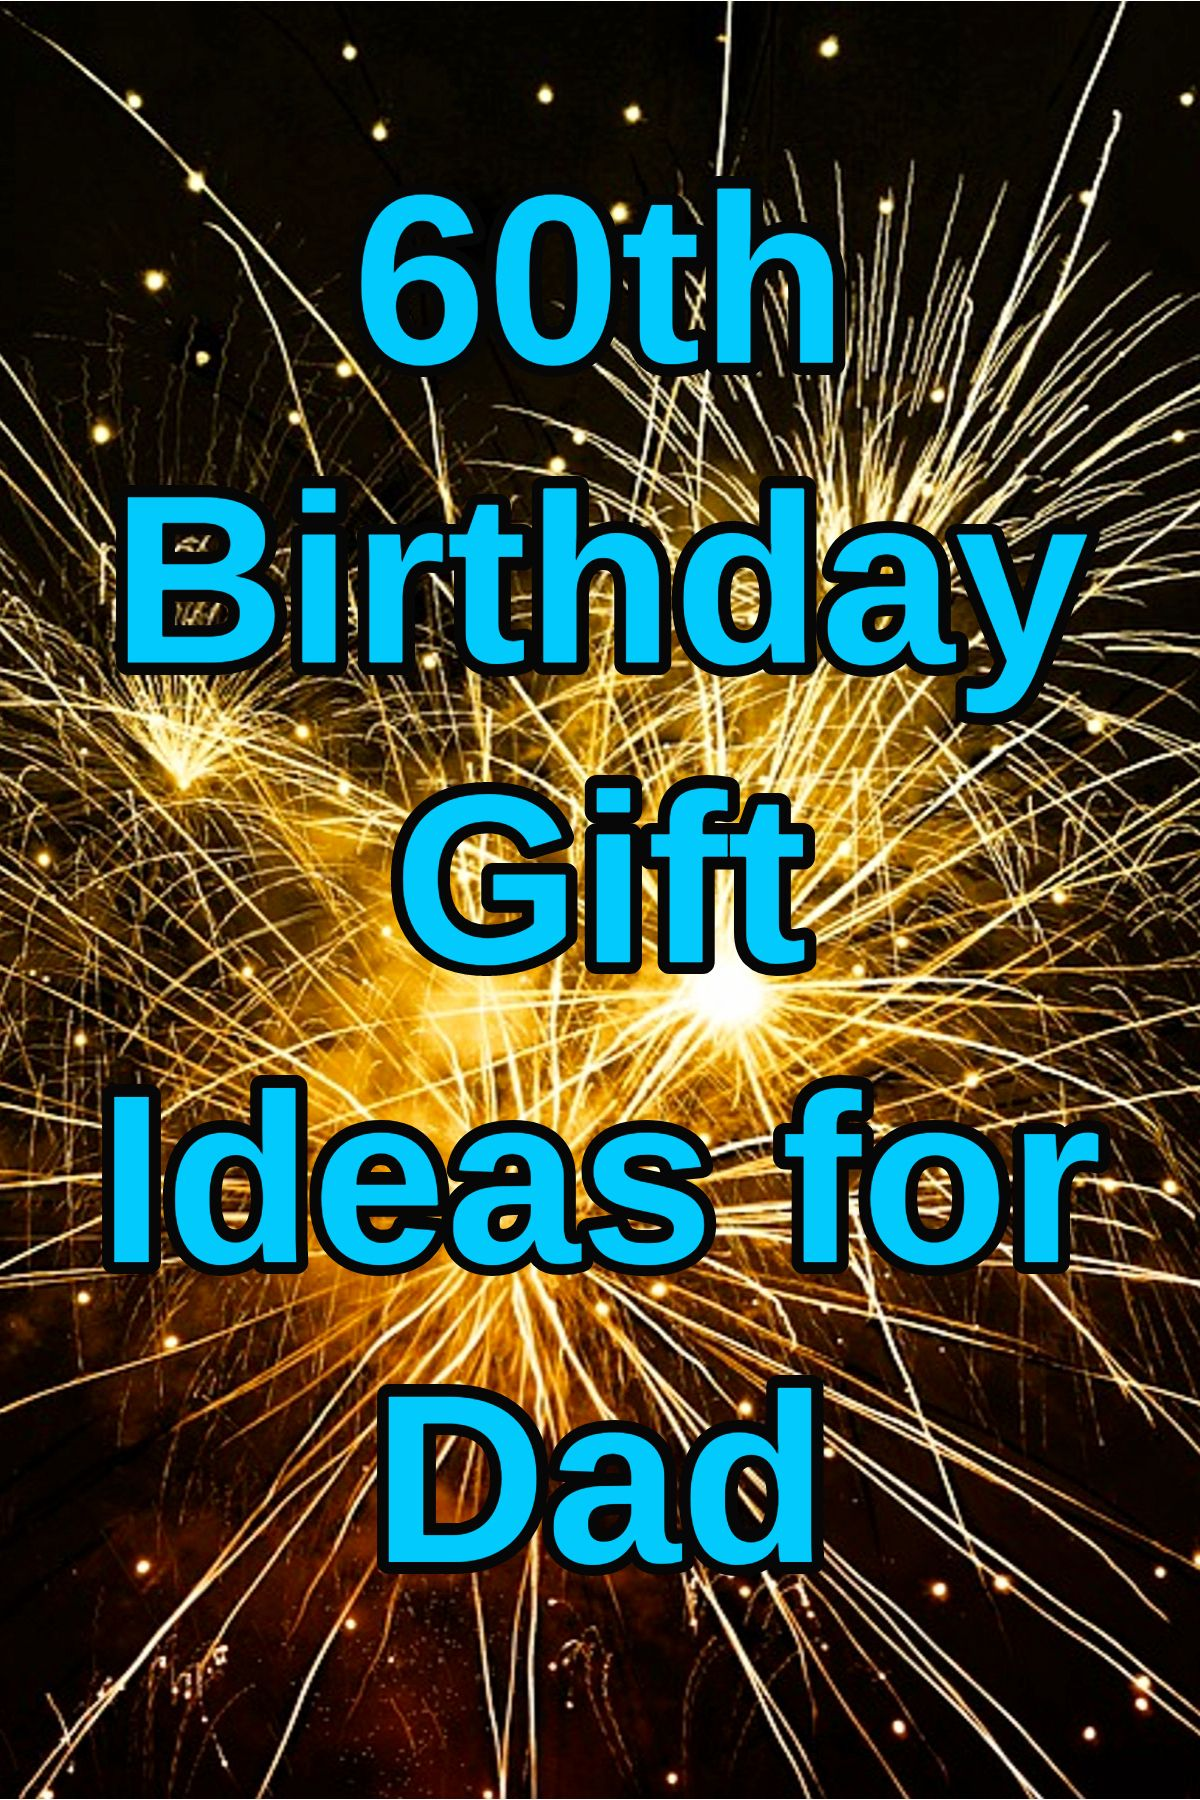 60th Birthday Gift Ideas For Dad Perfect That Will Just Love On His